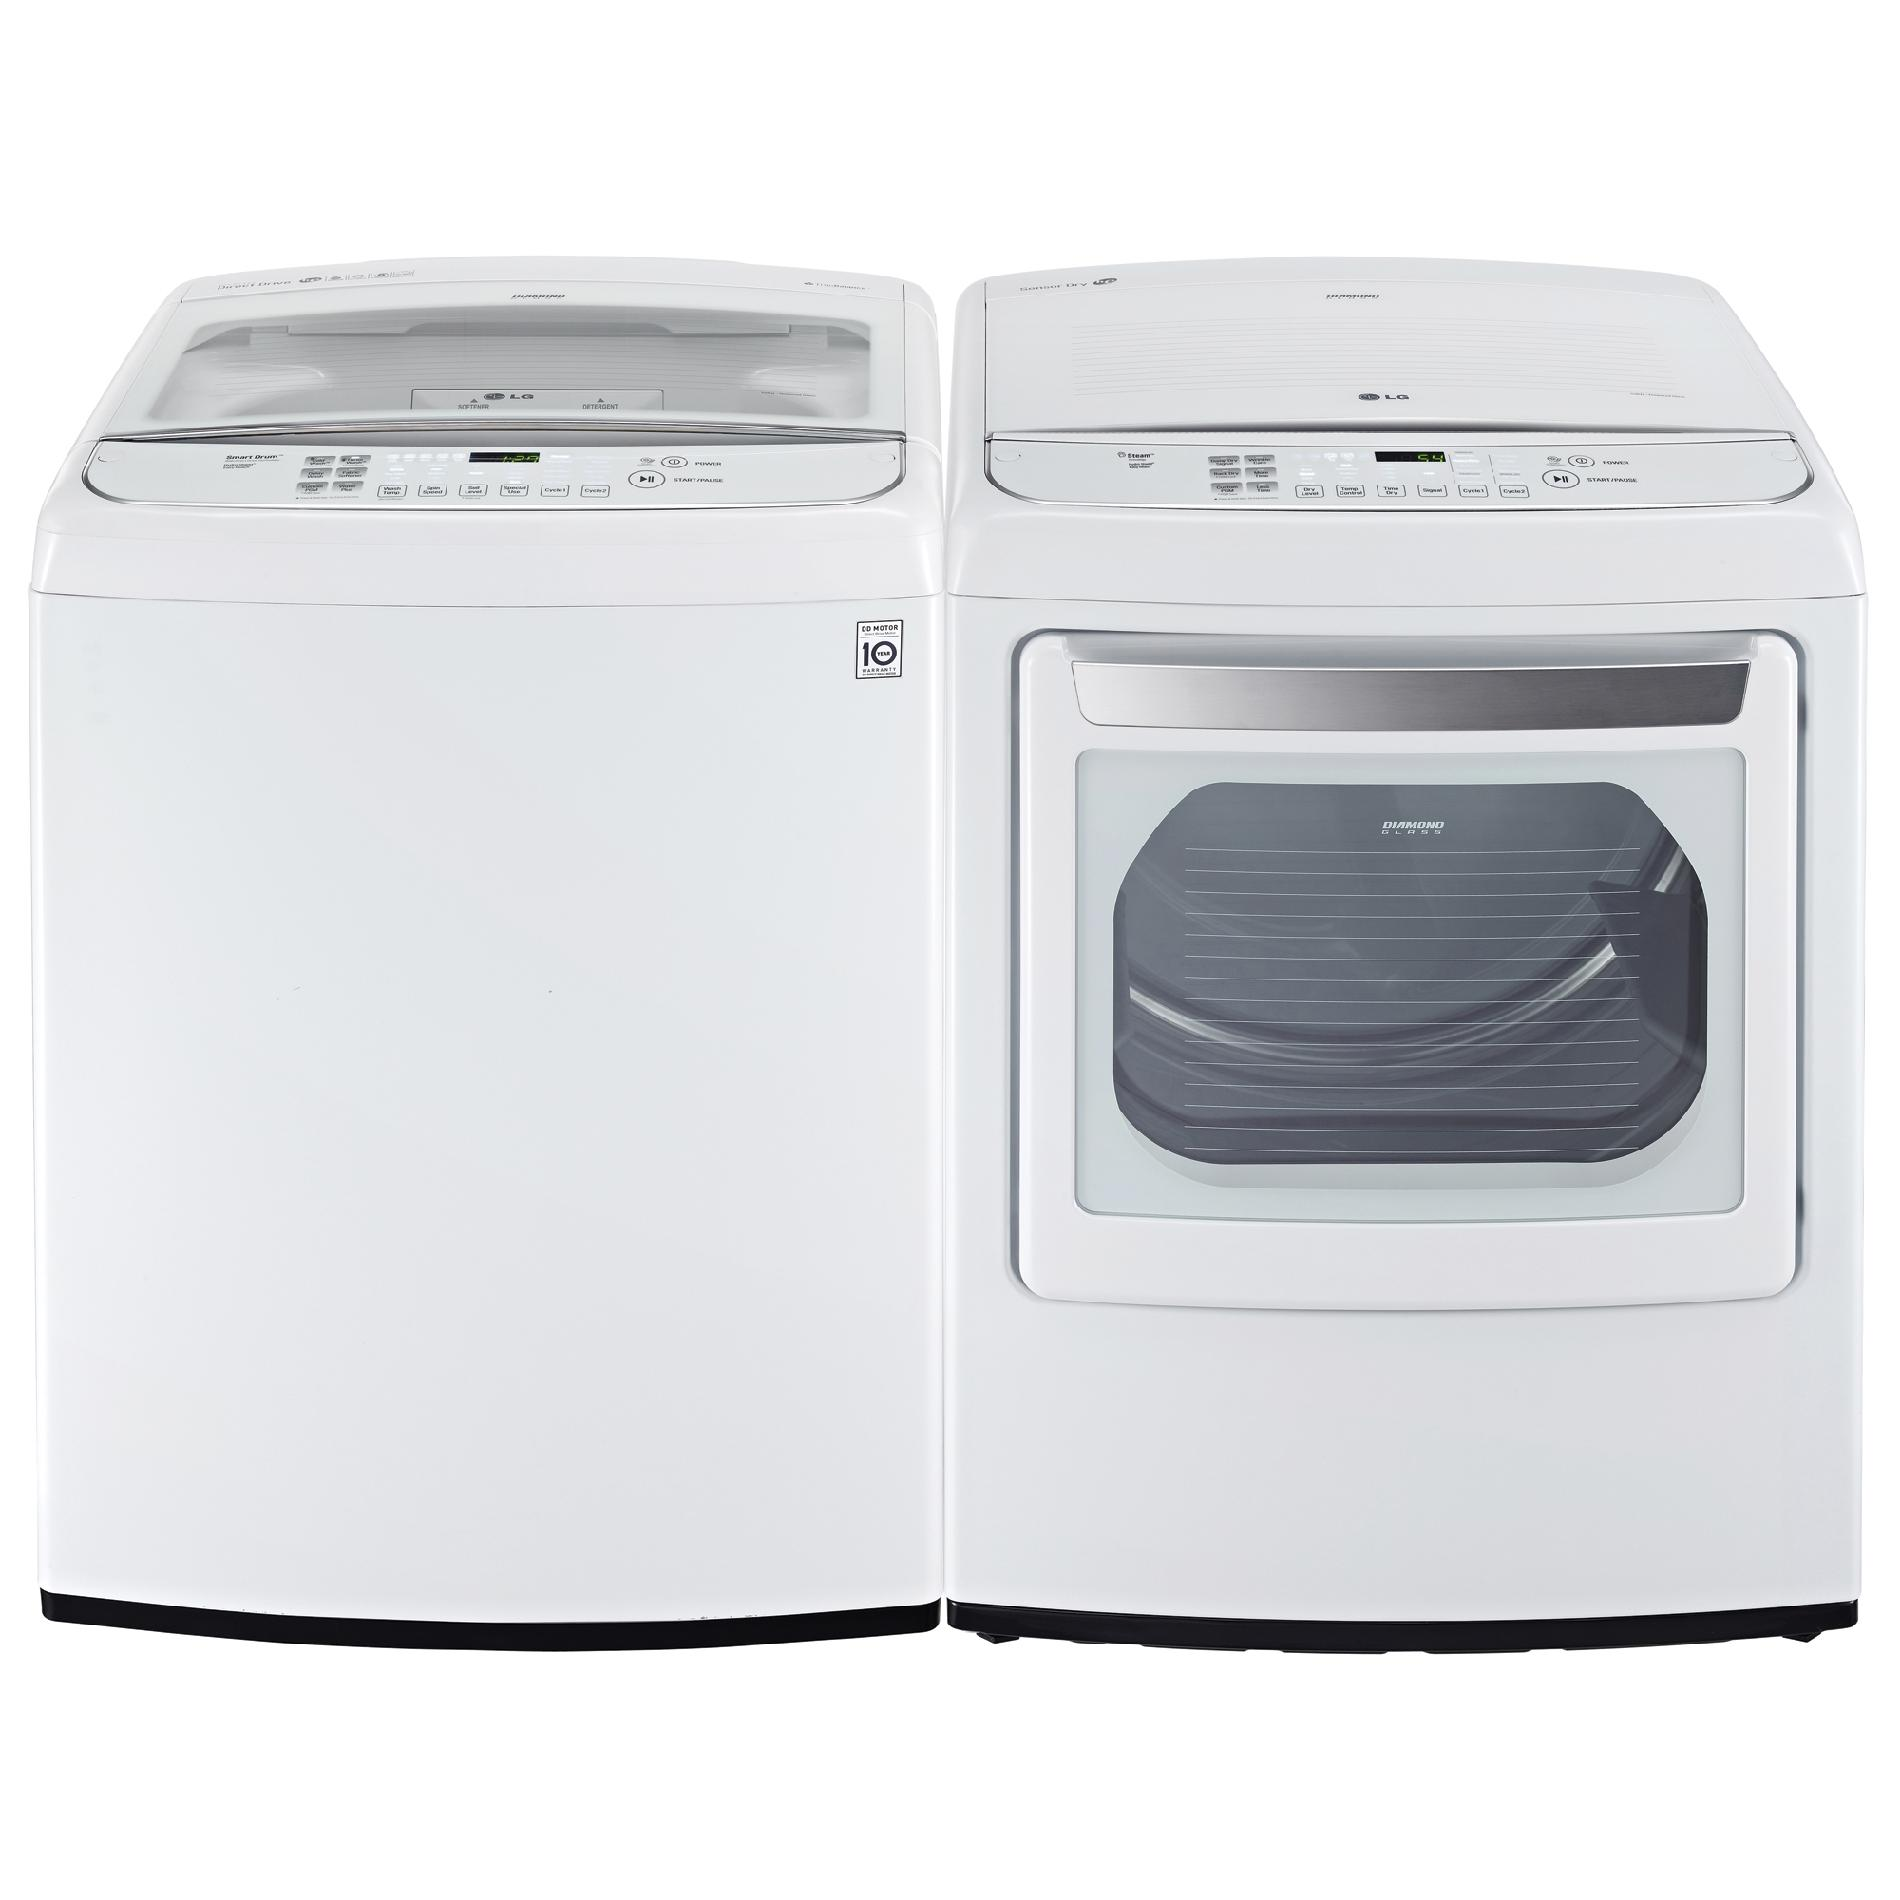 LG 7.3 cu. ft. Steam Electric Dryer w/ Front Controls - White